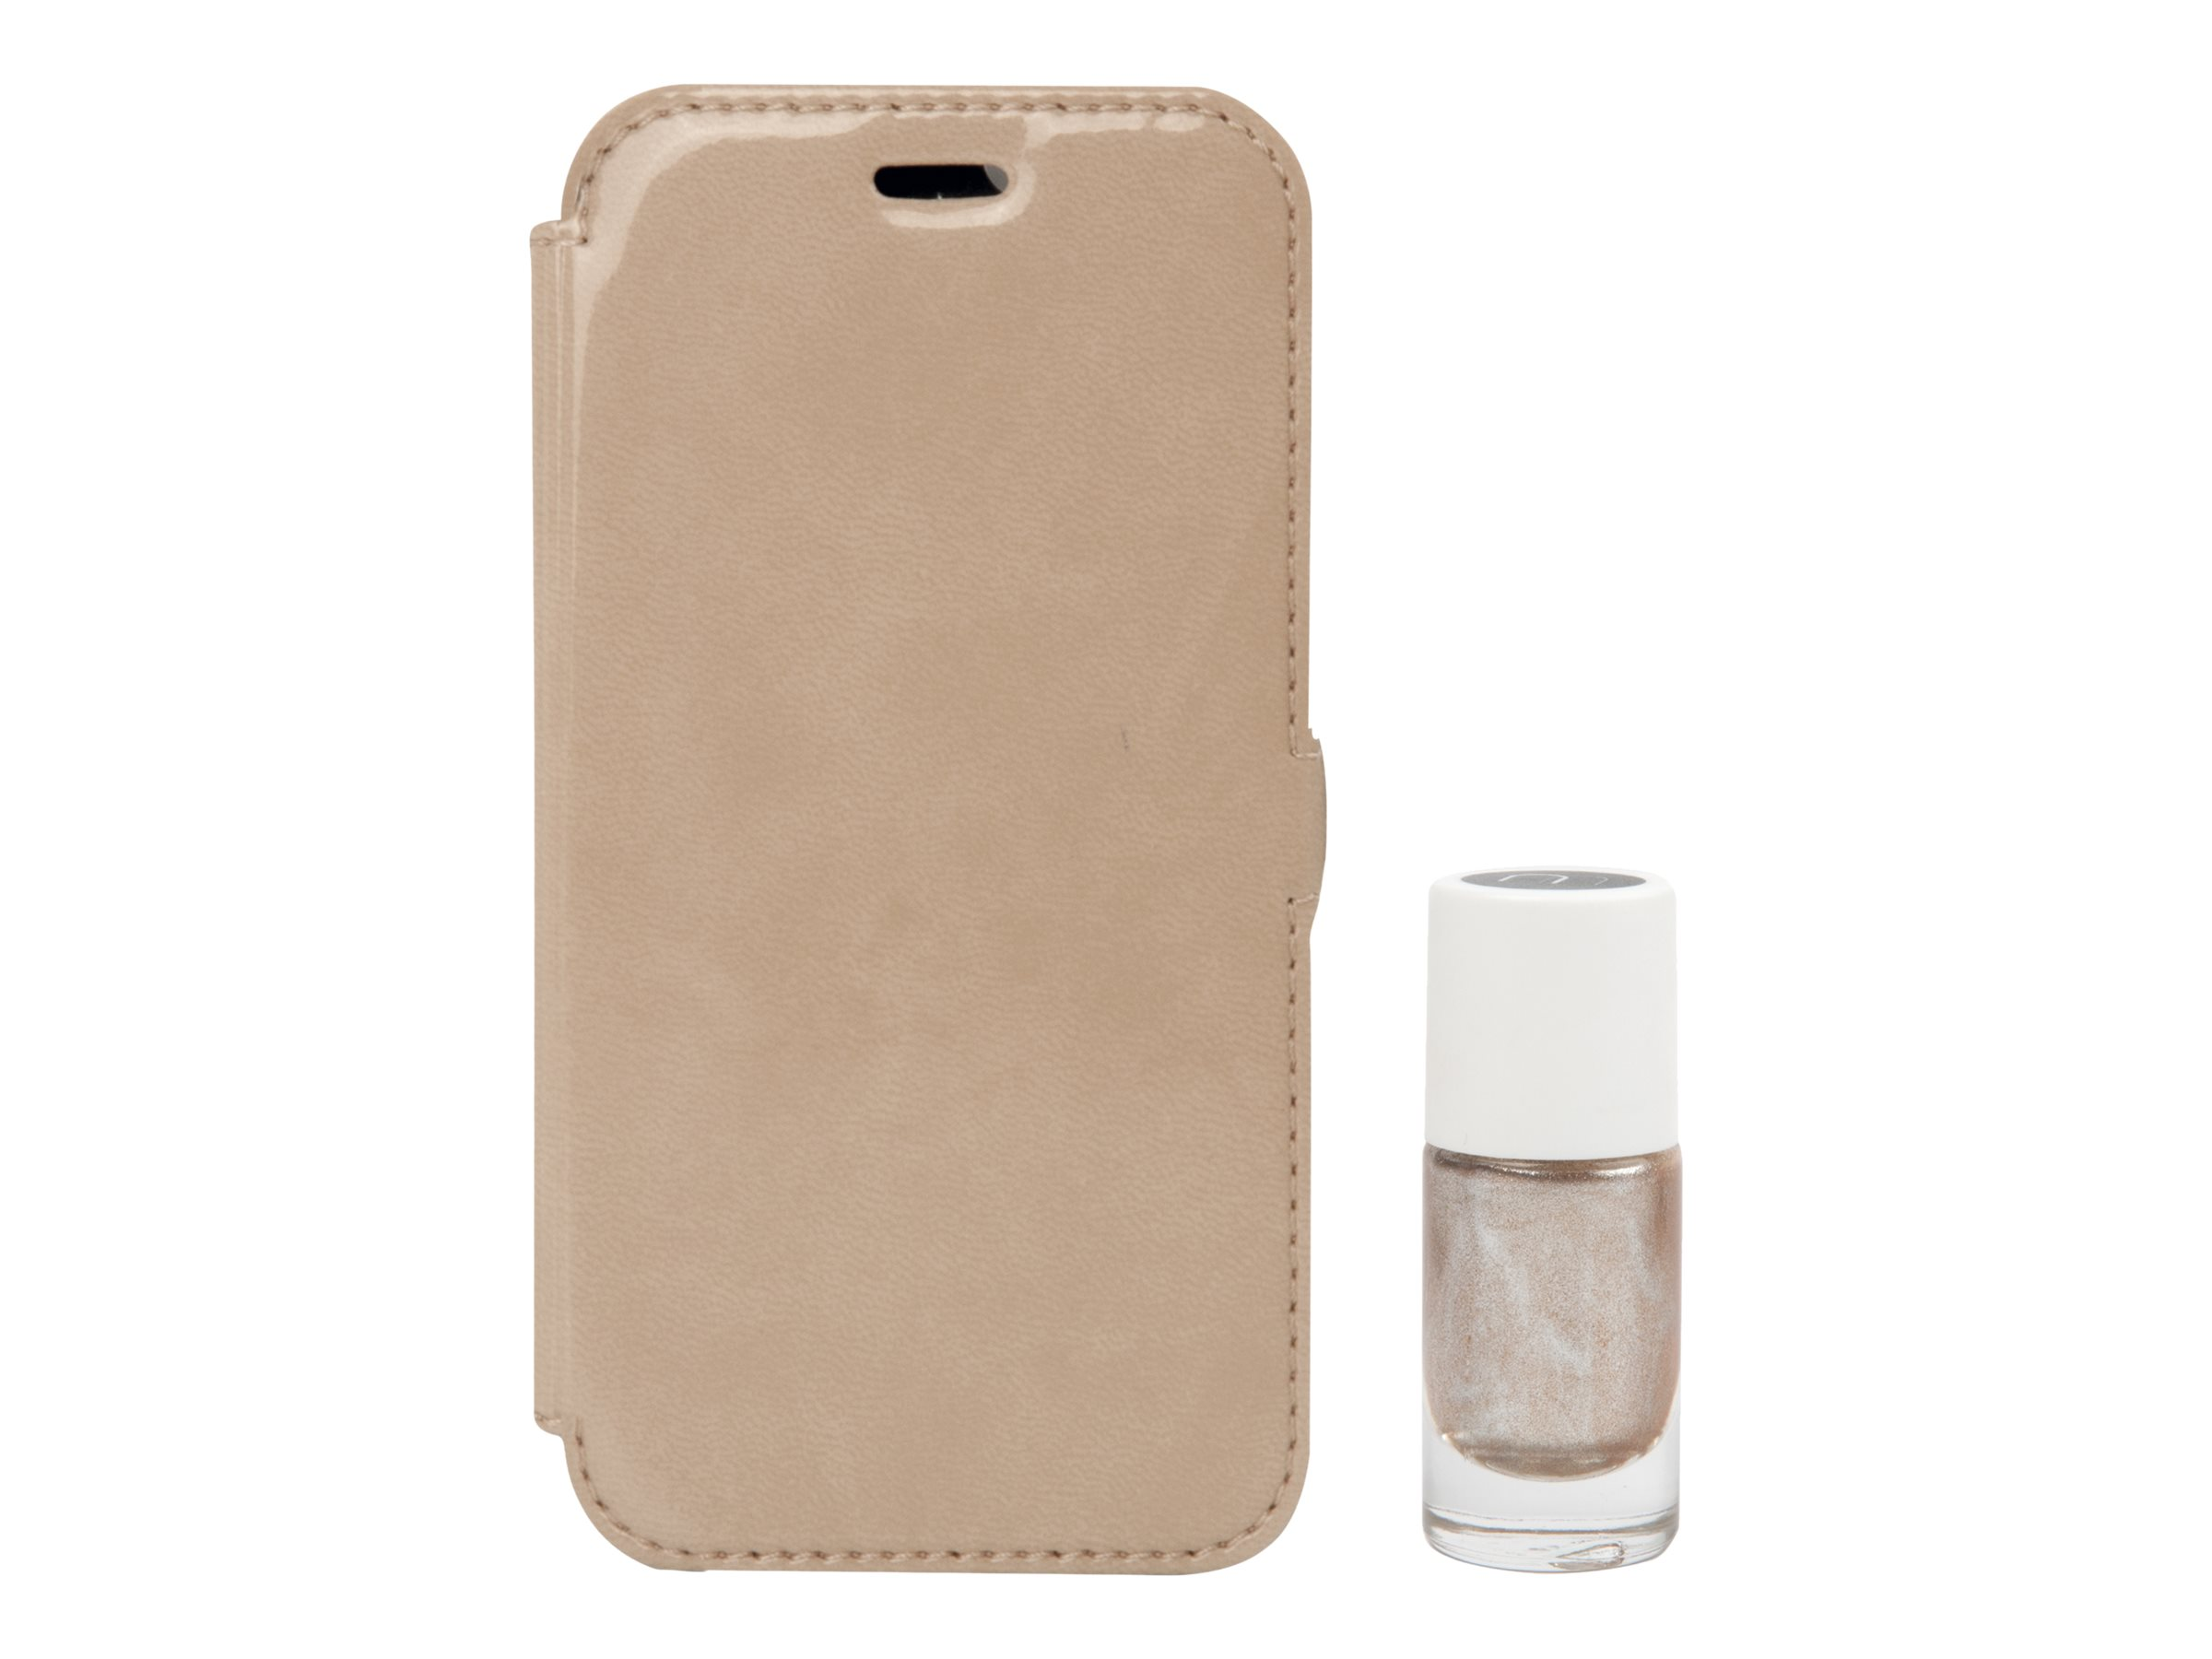 MUVIT LIFE Pack - Protection à rabat pour iPhone 6, 6s - beige